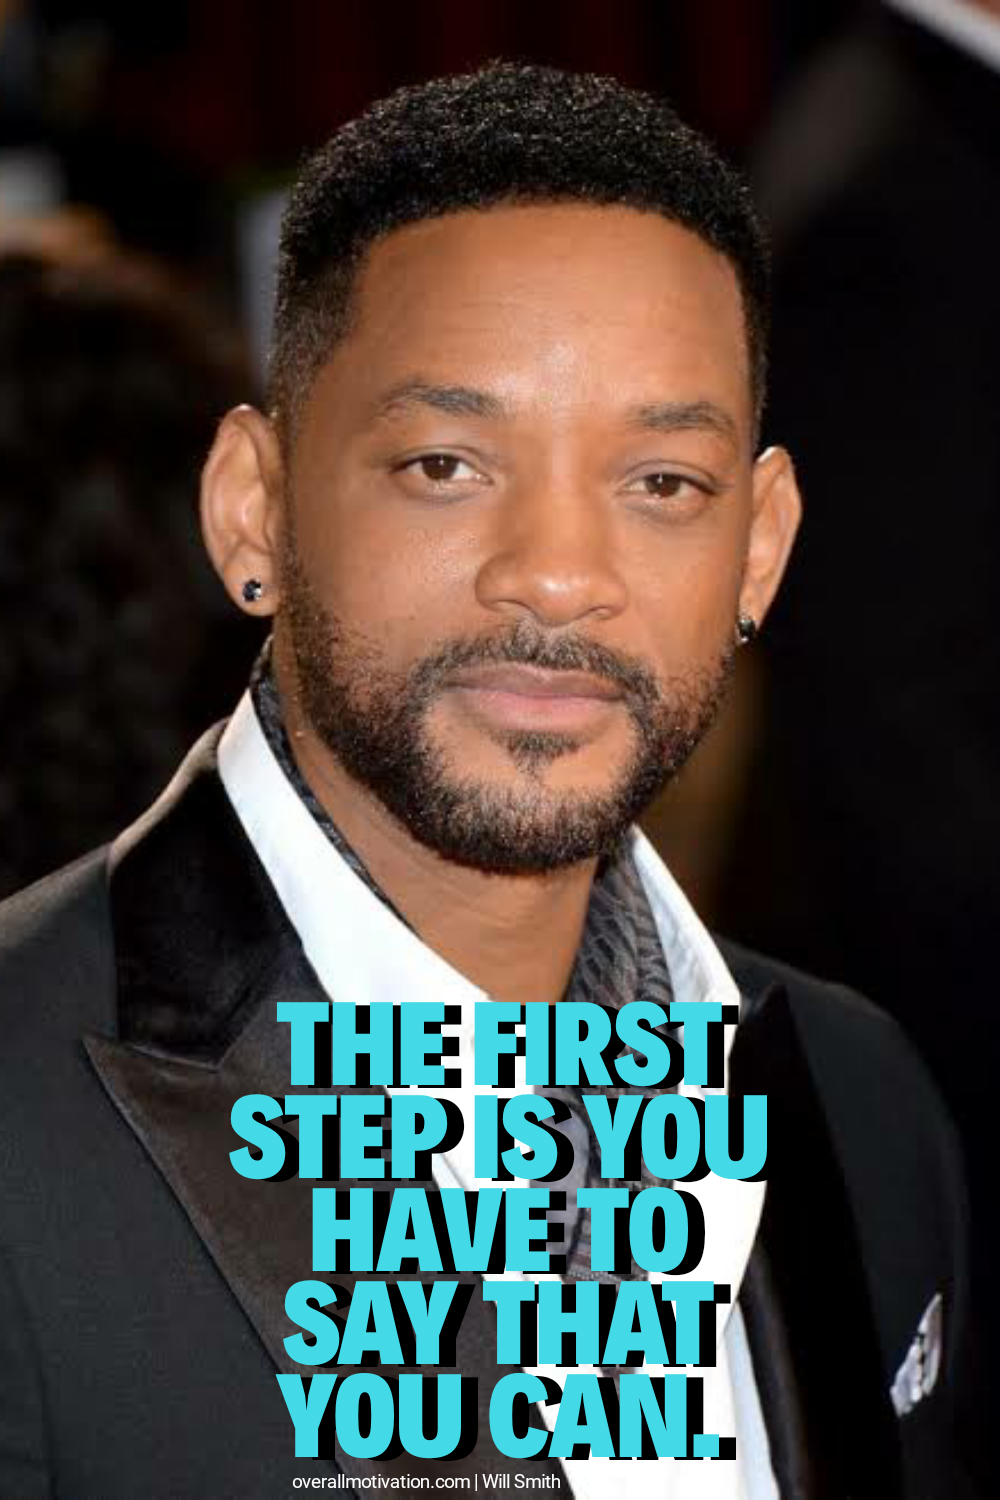 the first step you can